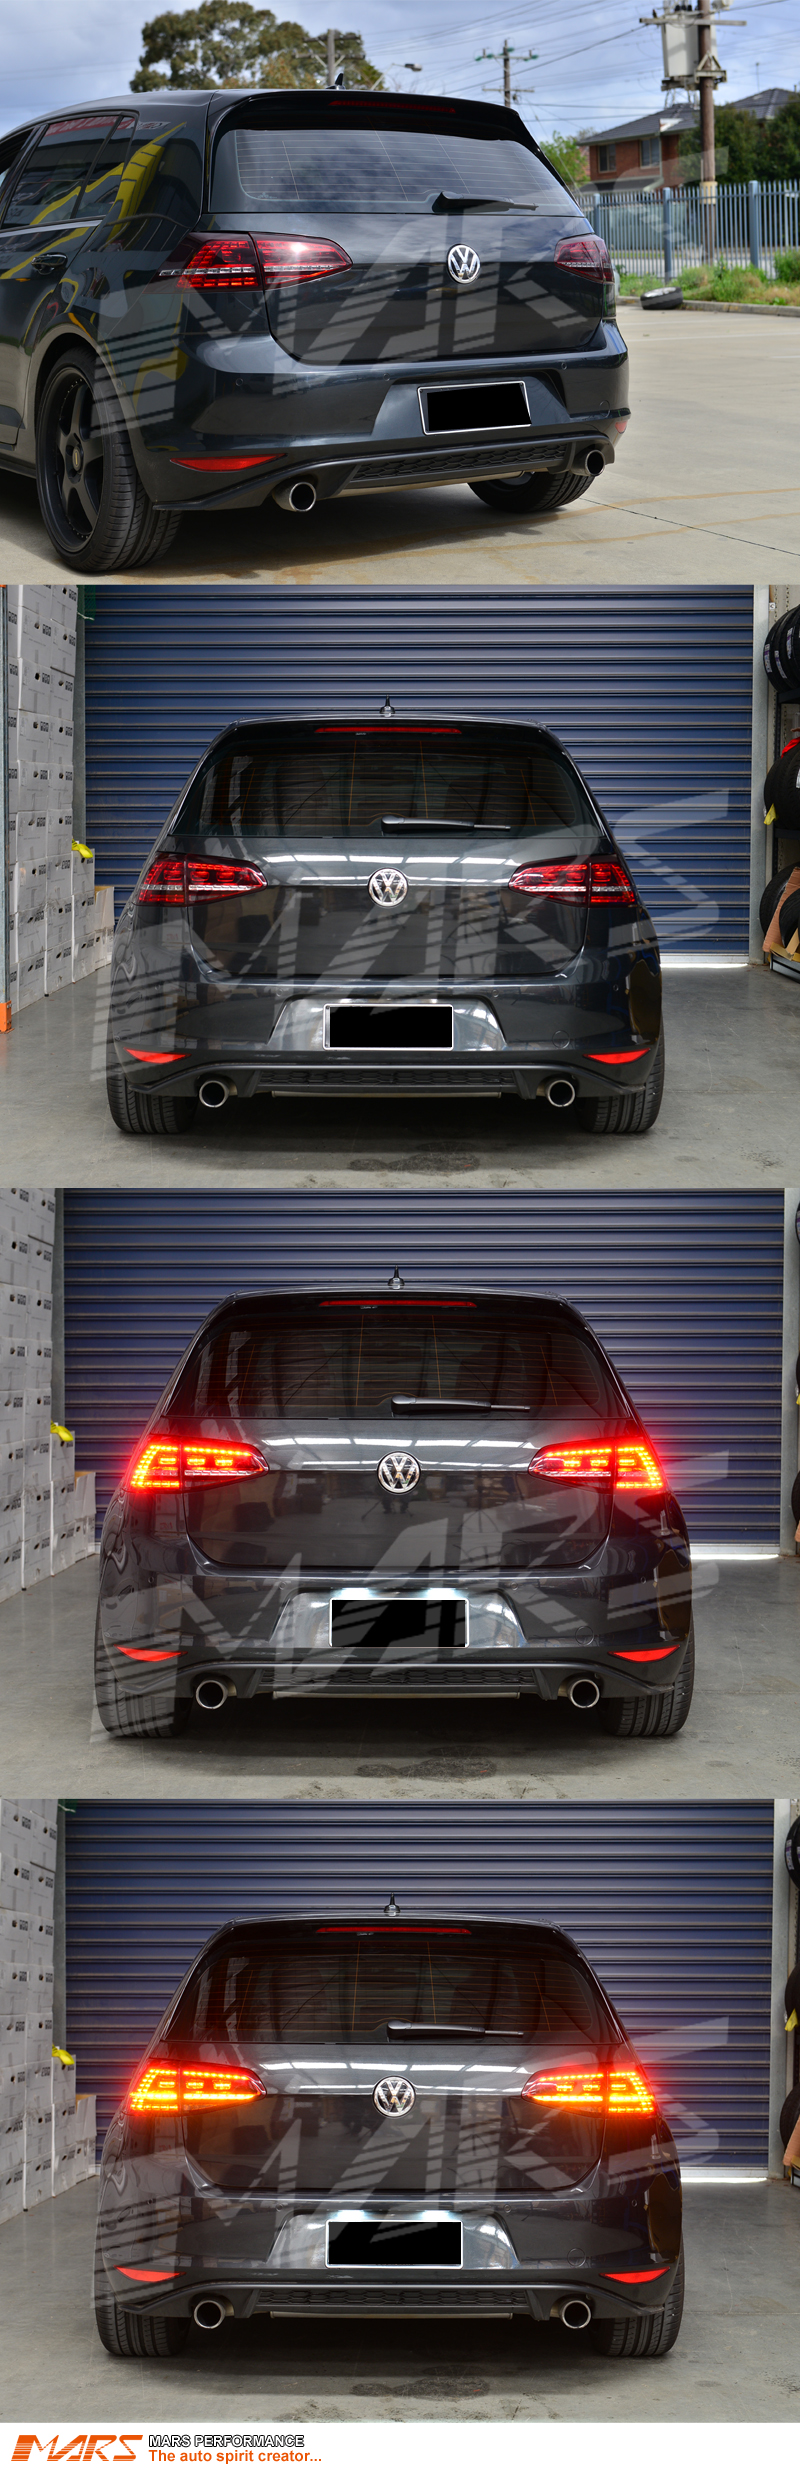 smoked red r style led tail lights for volkswagen vw golf. Black Bedroom Furniture Sets. Home Design Ideas